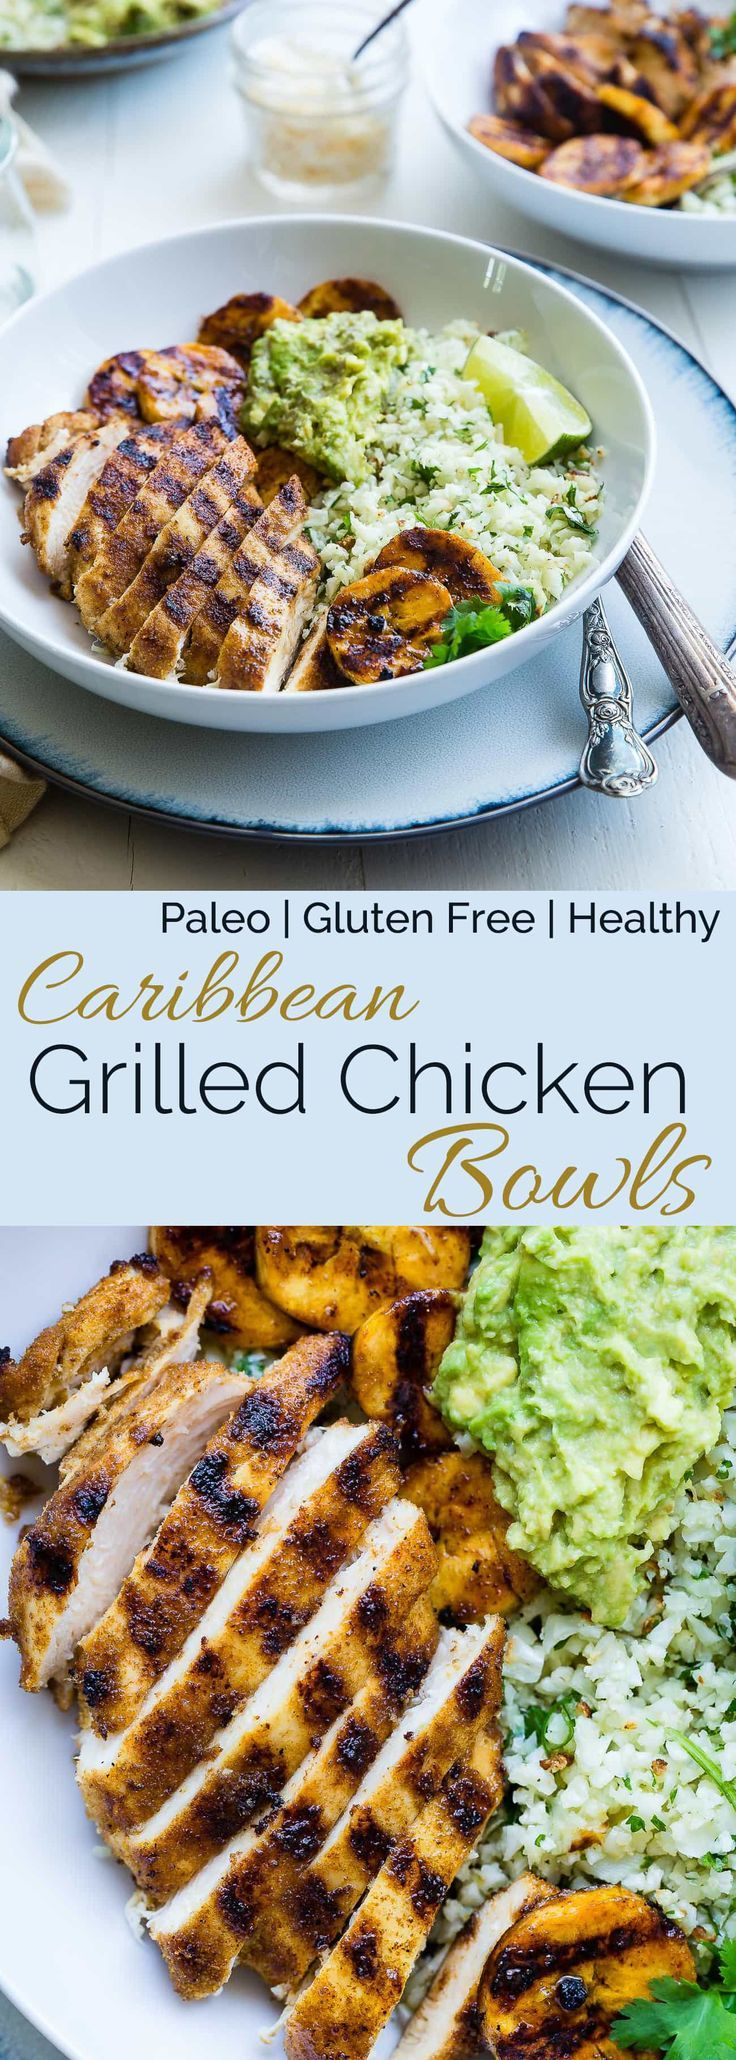 Caribbean Chicken Bowls - These paleo-friendly bowls have grilled plantains, cauliflower rice and avocado! A healthy, gluten free summer meal for under 500 calories! | Foodfaithfitness.com | @FoodFaithFit